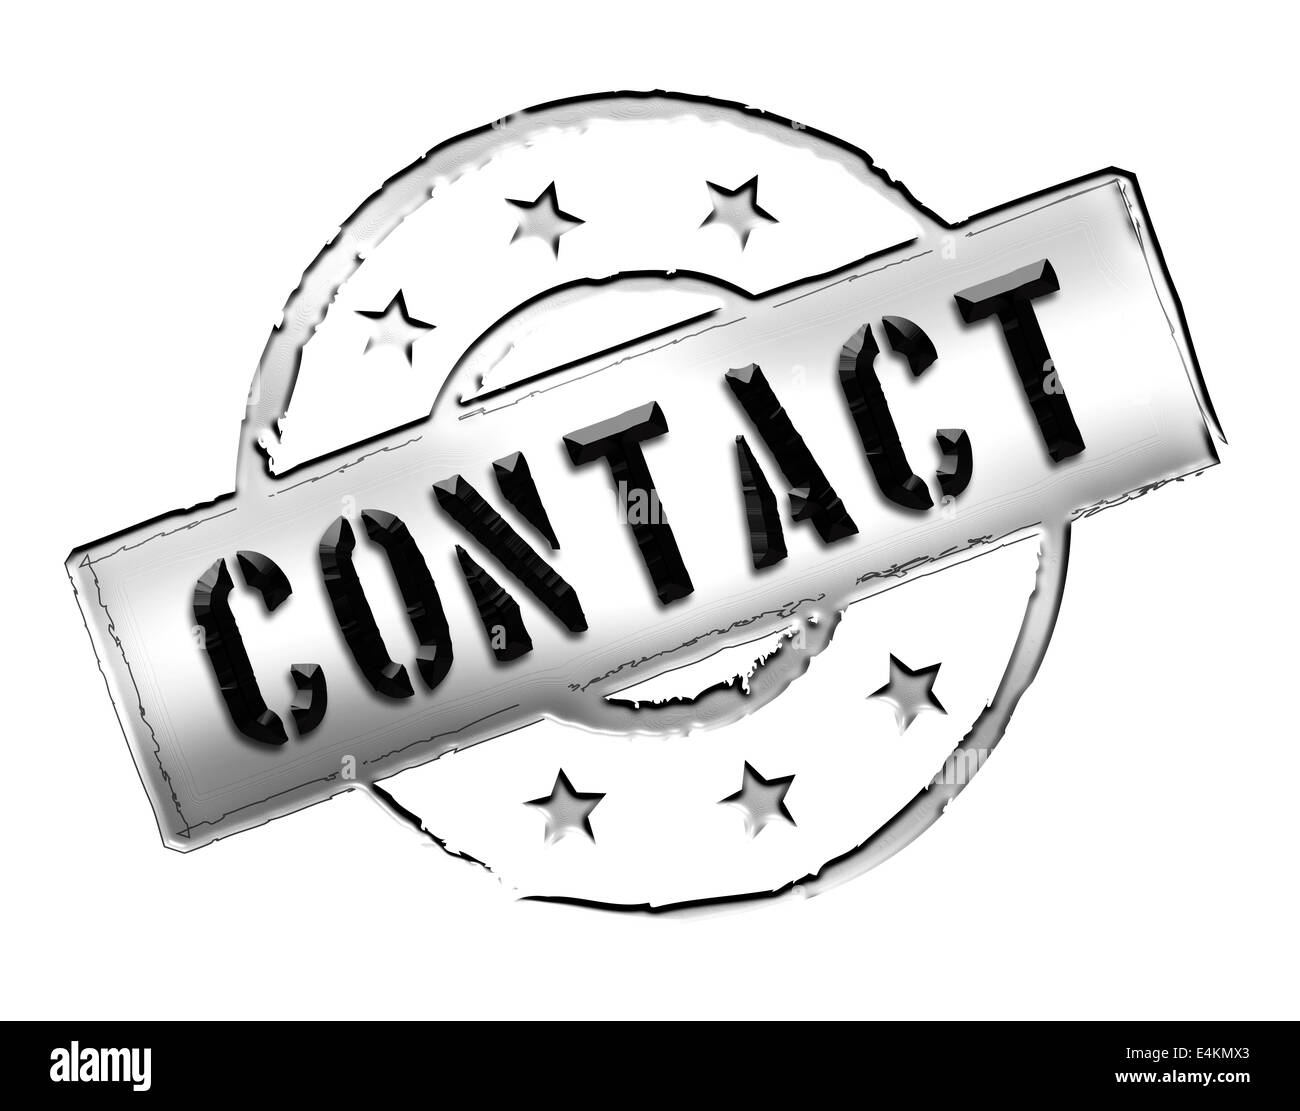 Stamp - CONTACT Stock Photo